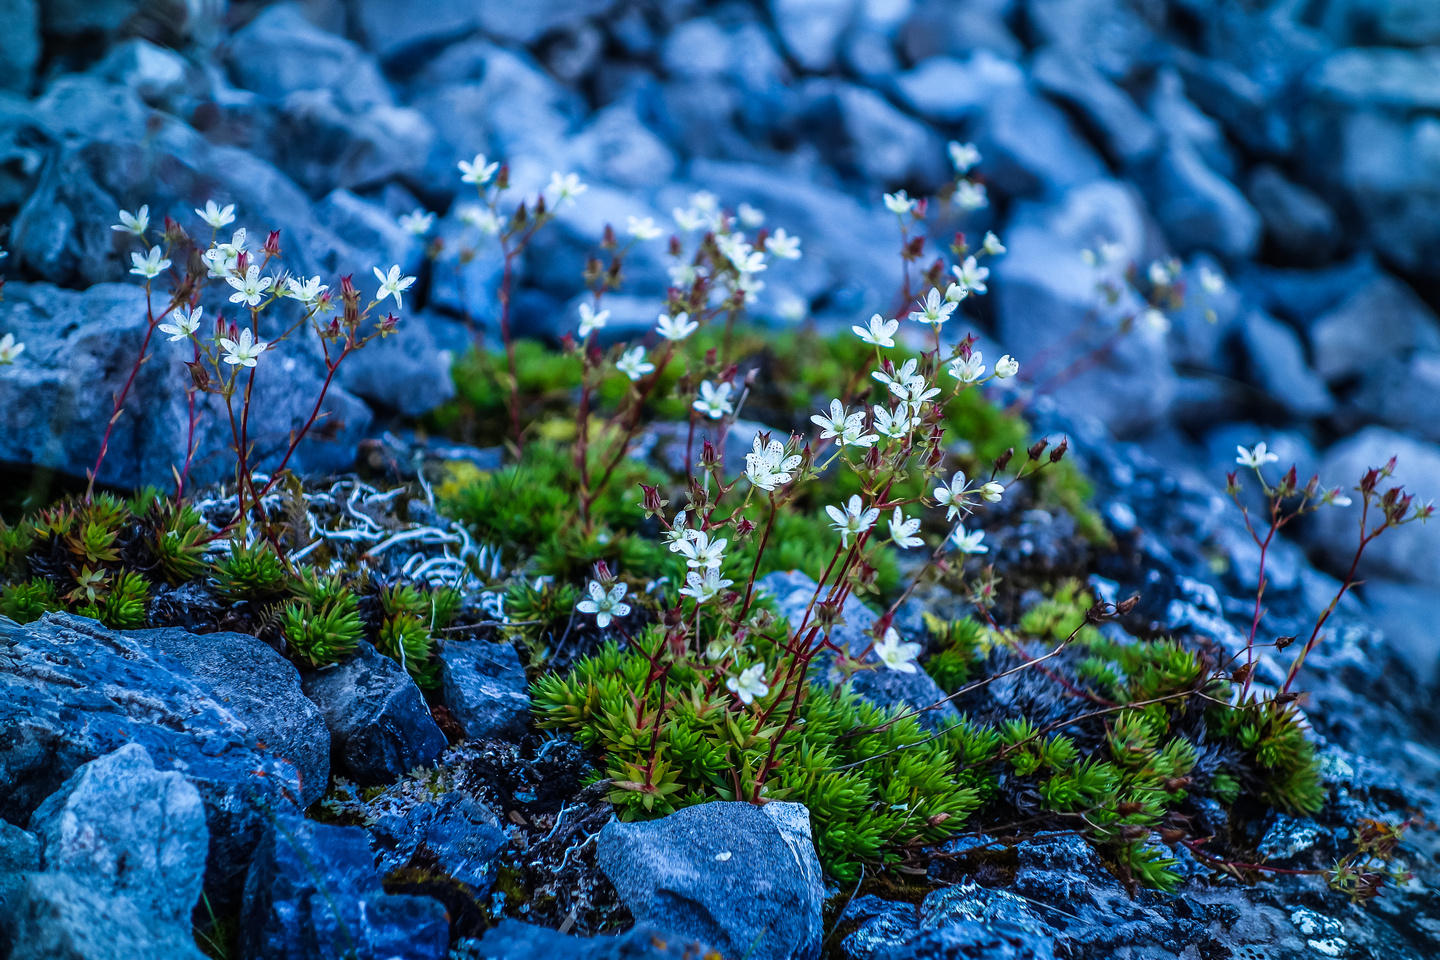 More Saxifrage - a delicate alpine flower that has tiny red dots on small white petals and thrives around alpine meadows / lakes such as these.